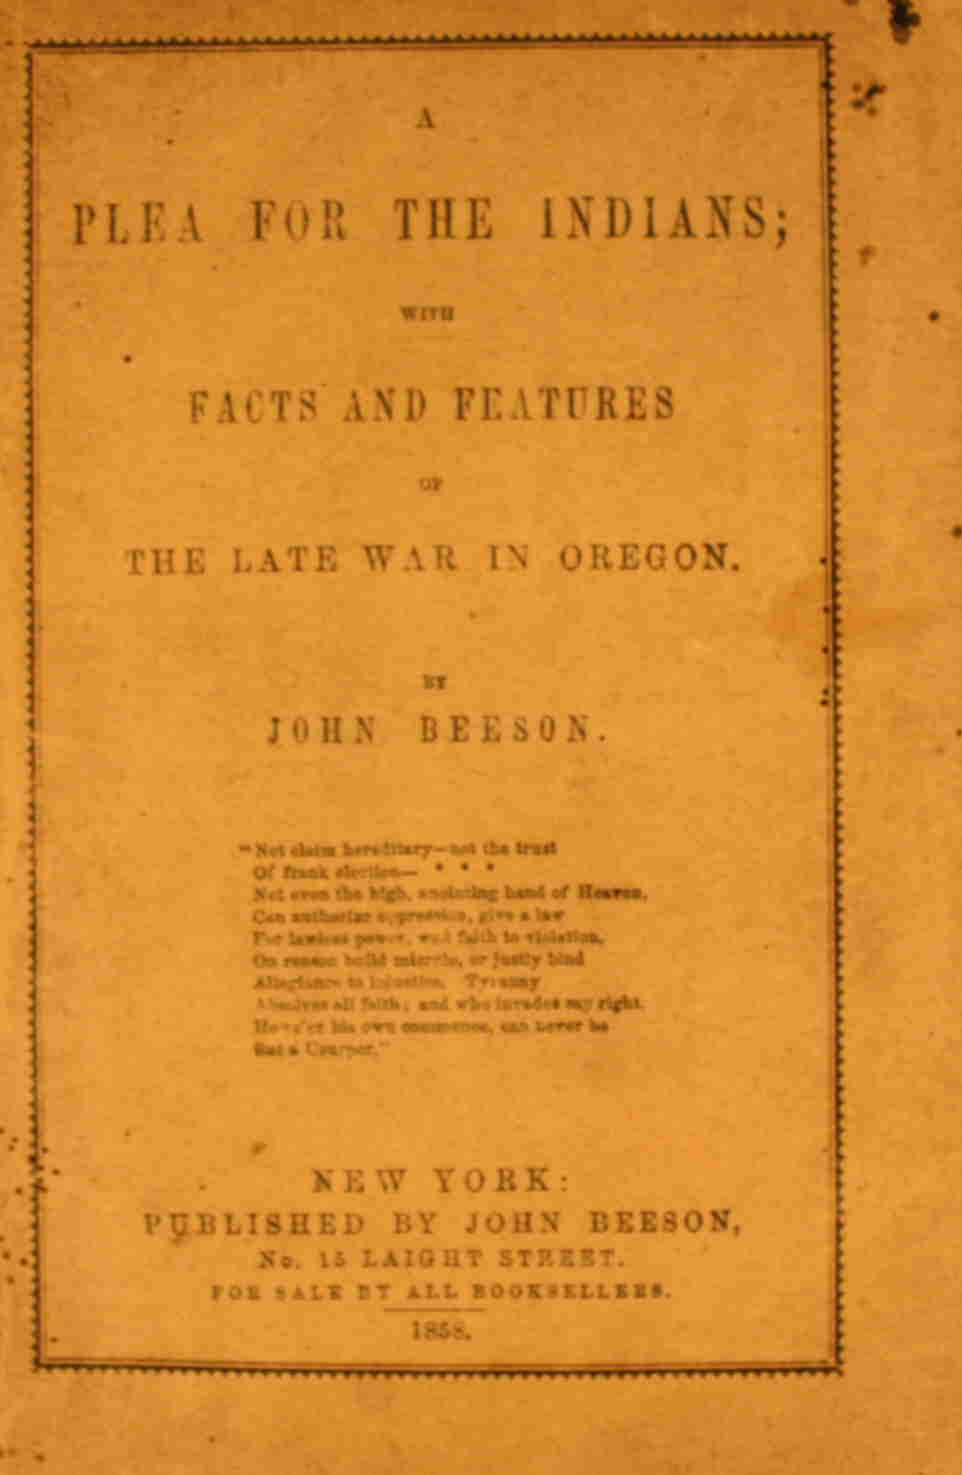 Image for A Plea for the Indians; with Facts and Features of the Late War in Oregon.